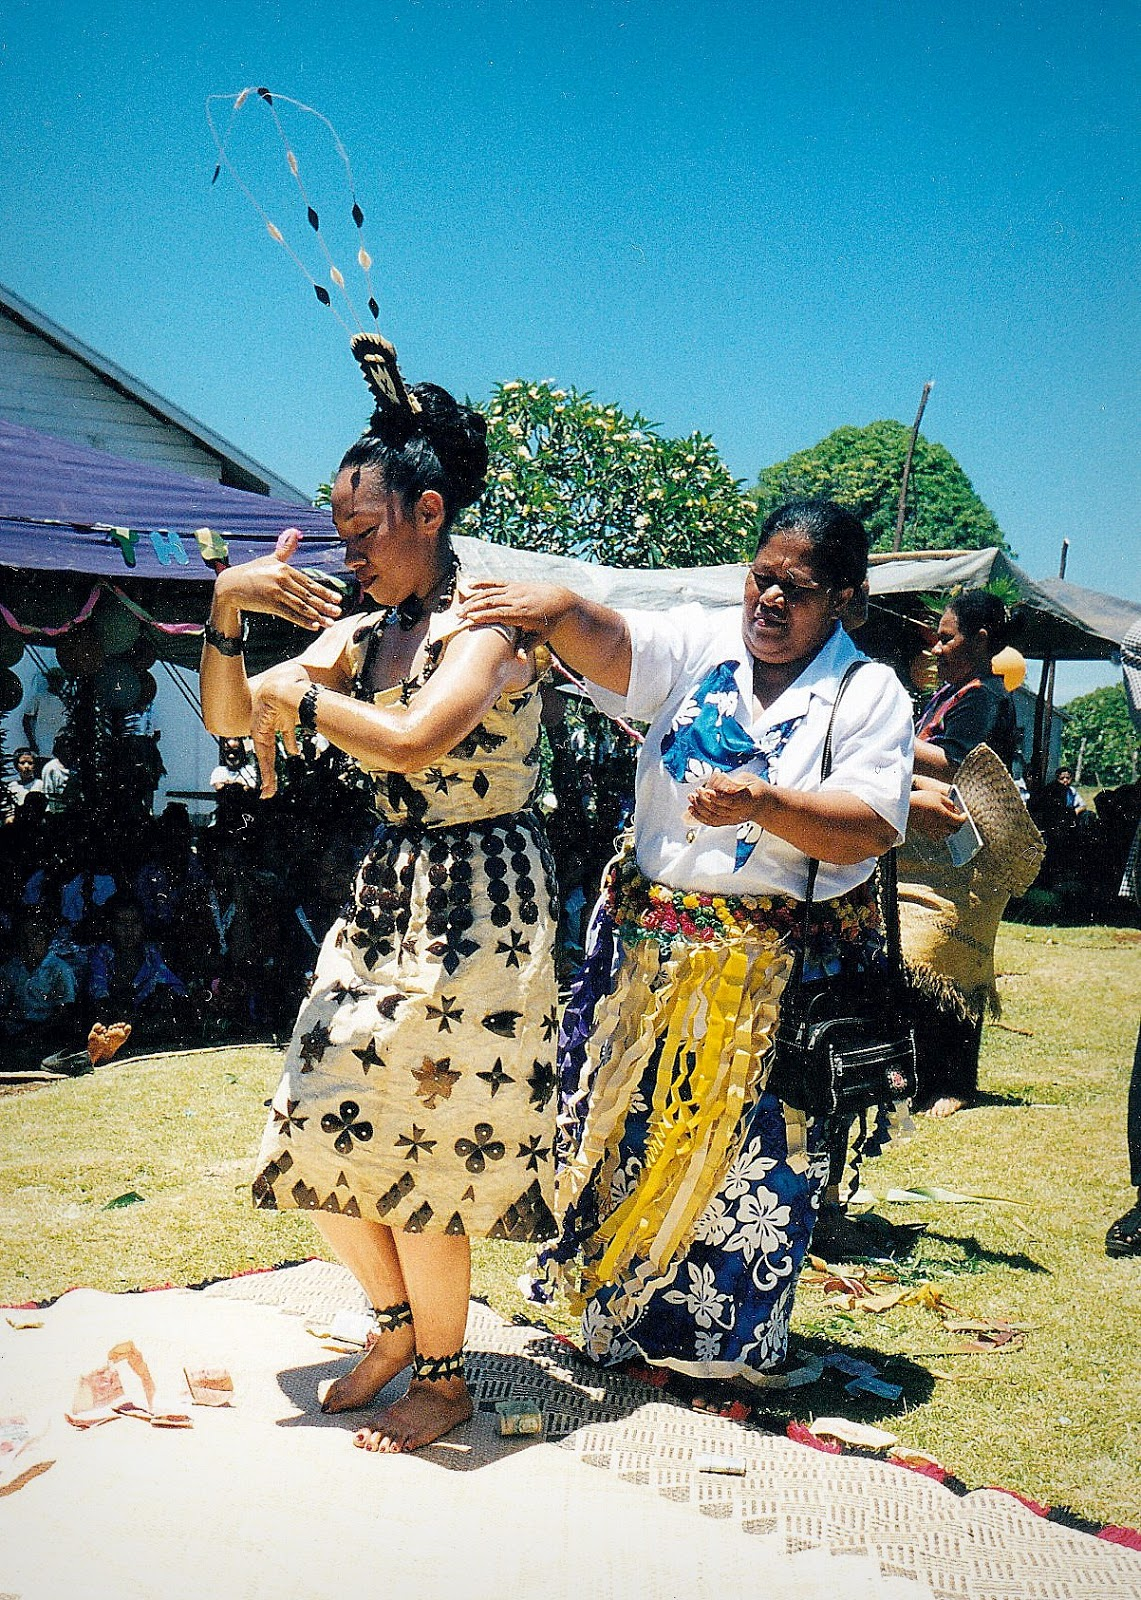 At this Tongan feast, there was also dancing by the birthday girl